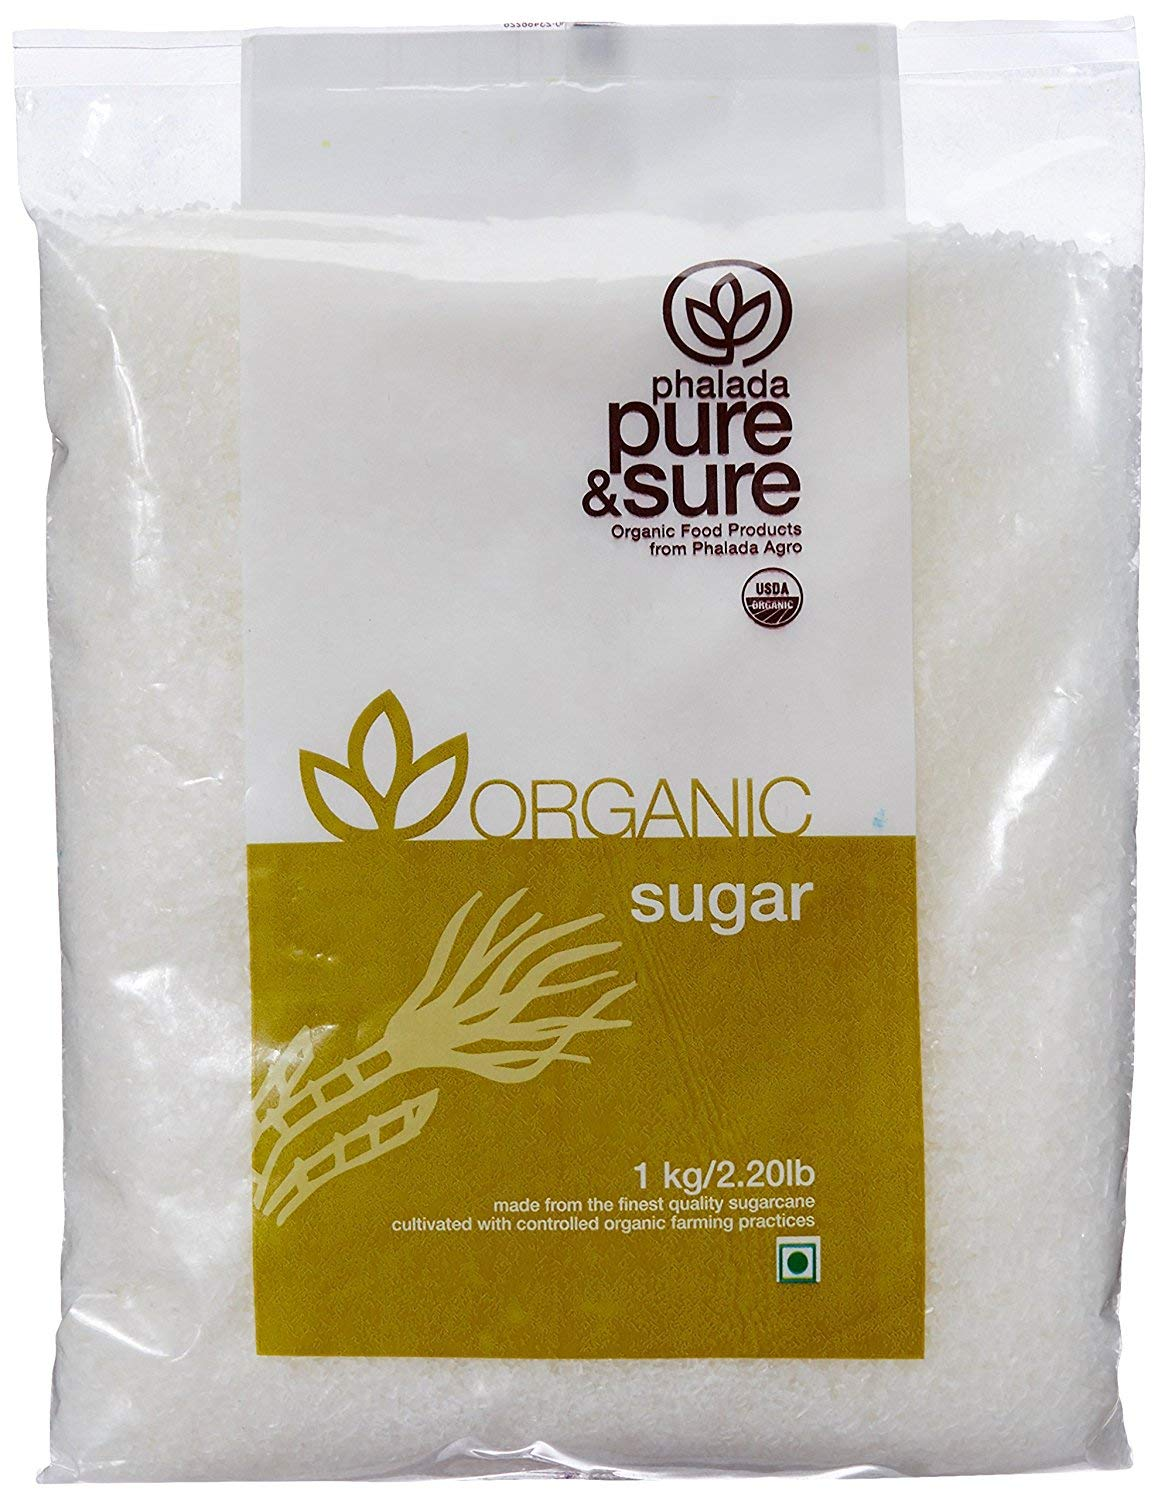 Pure & Sure Organic Sugar, 1kg